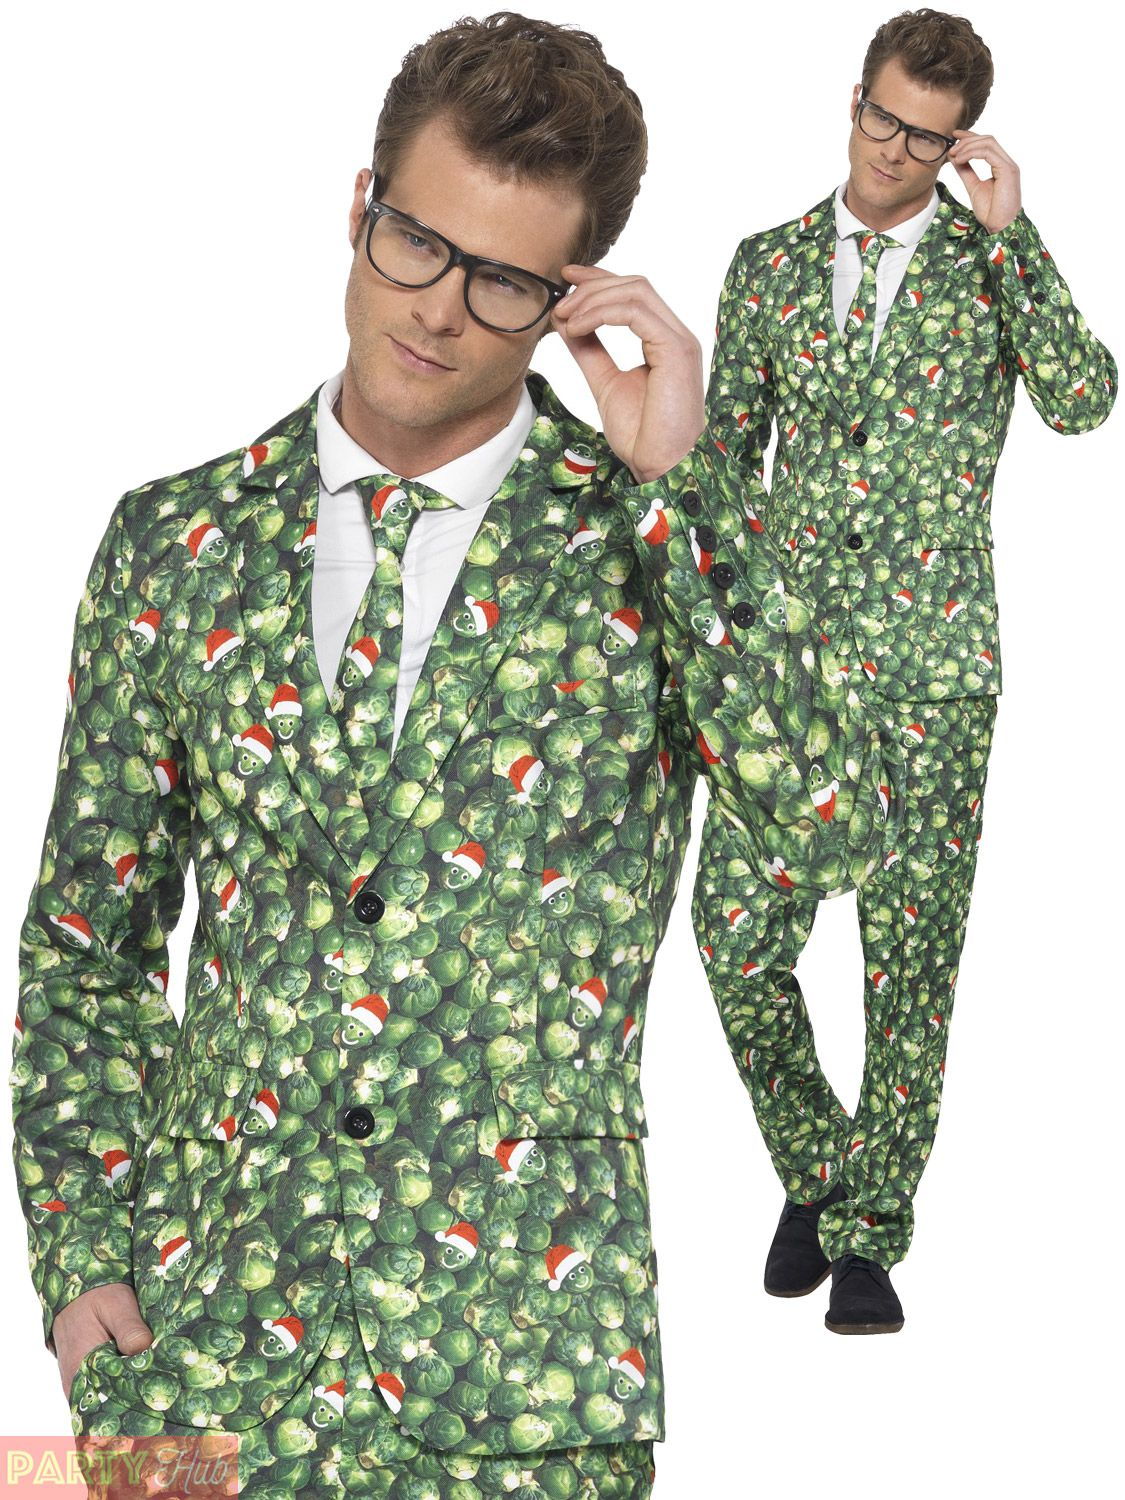 24a51839175 Mens-Christmas-Suit-Brussel-Sprout-Pattern-Funny-Festive-Fancy-Dress-Costume